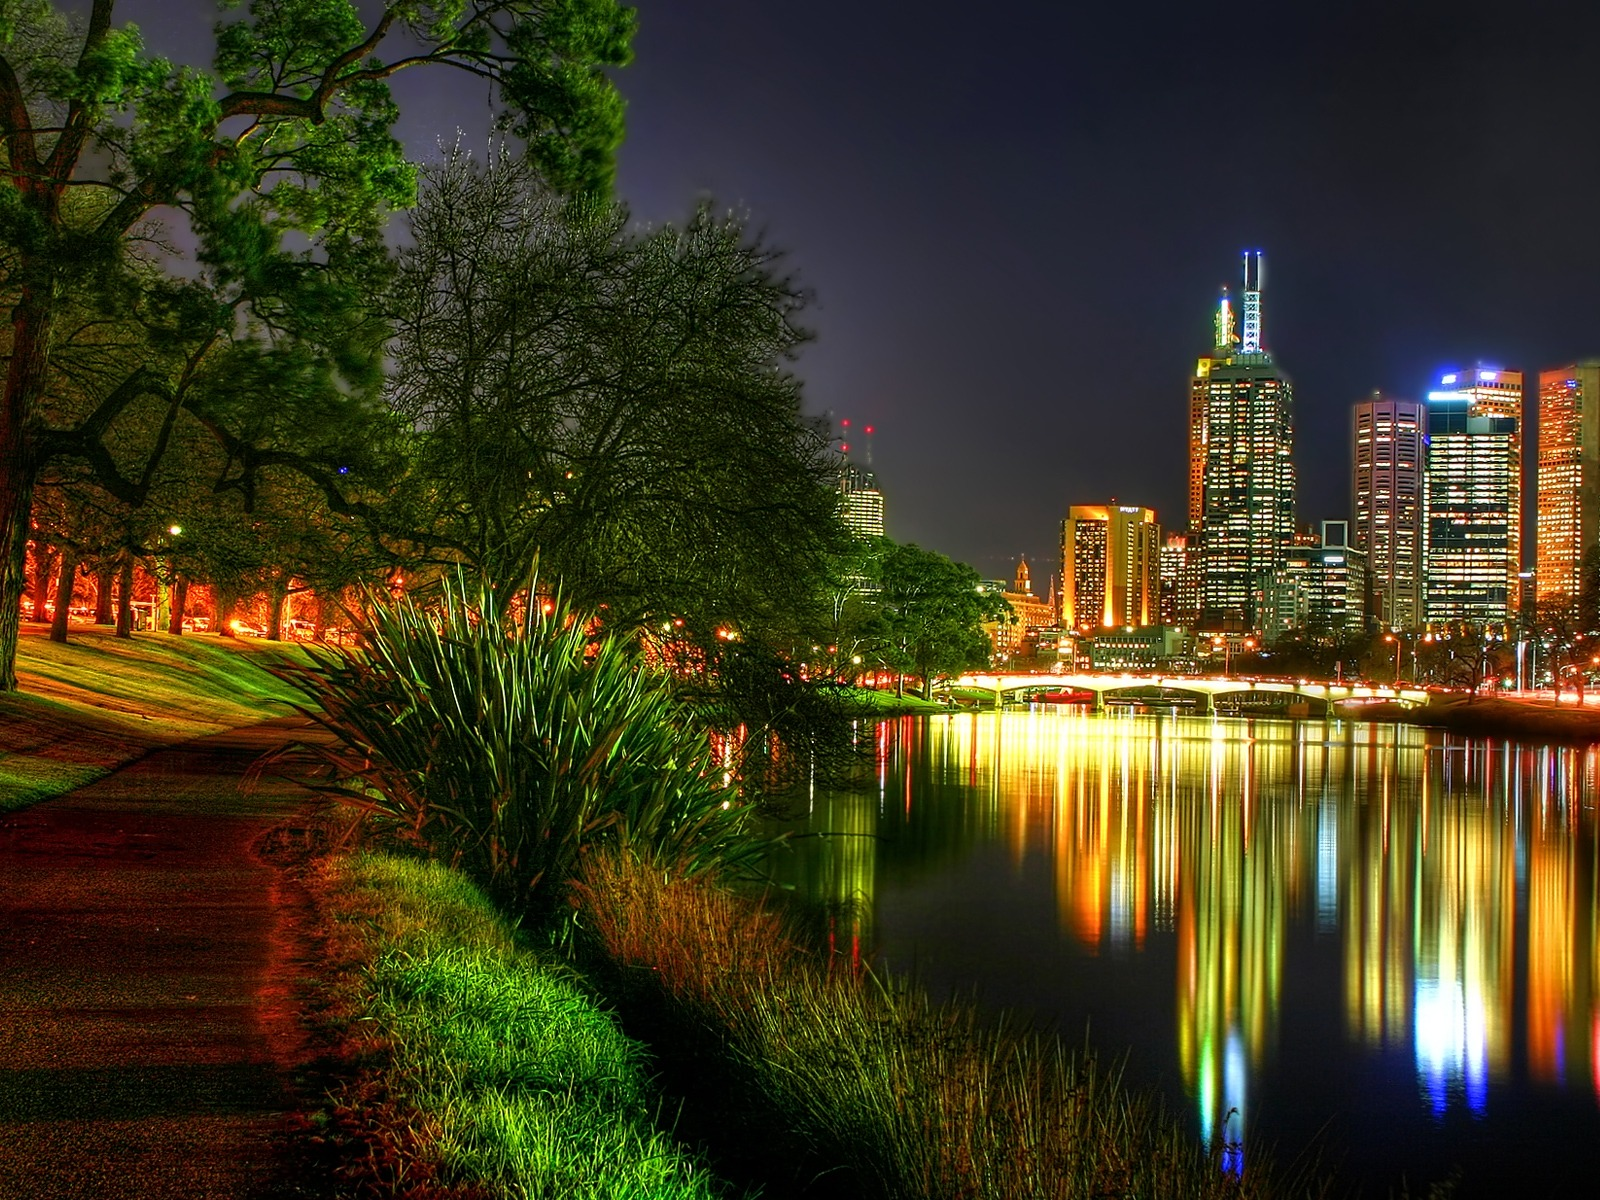 1600x1200 The City Night Lights Desktop Pc And Mac Wallpaper